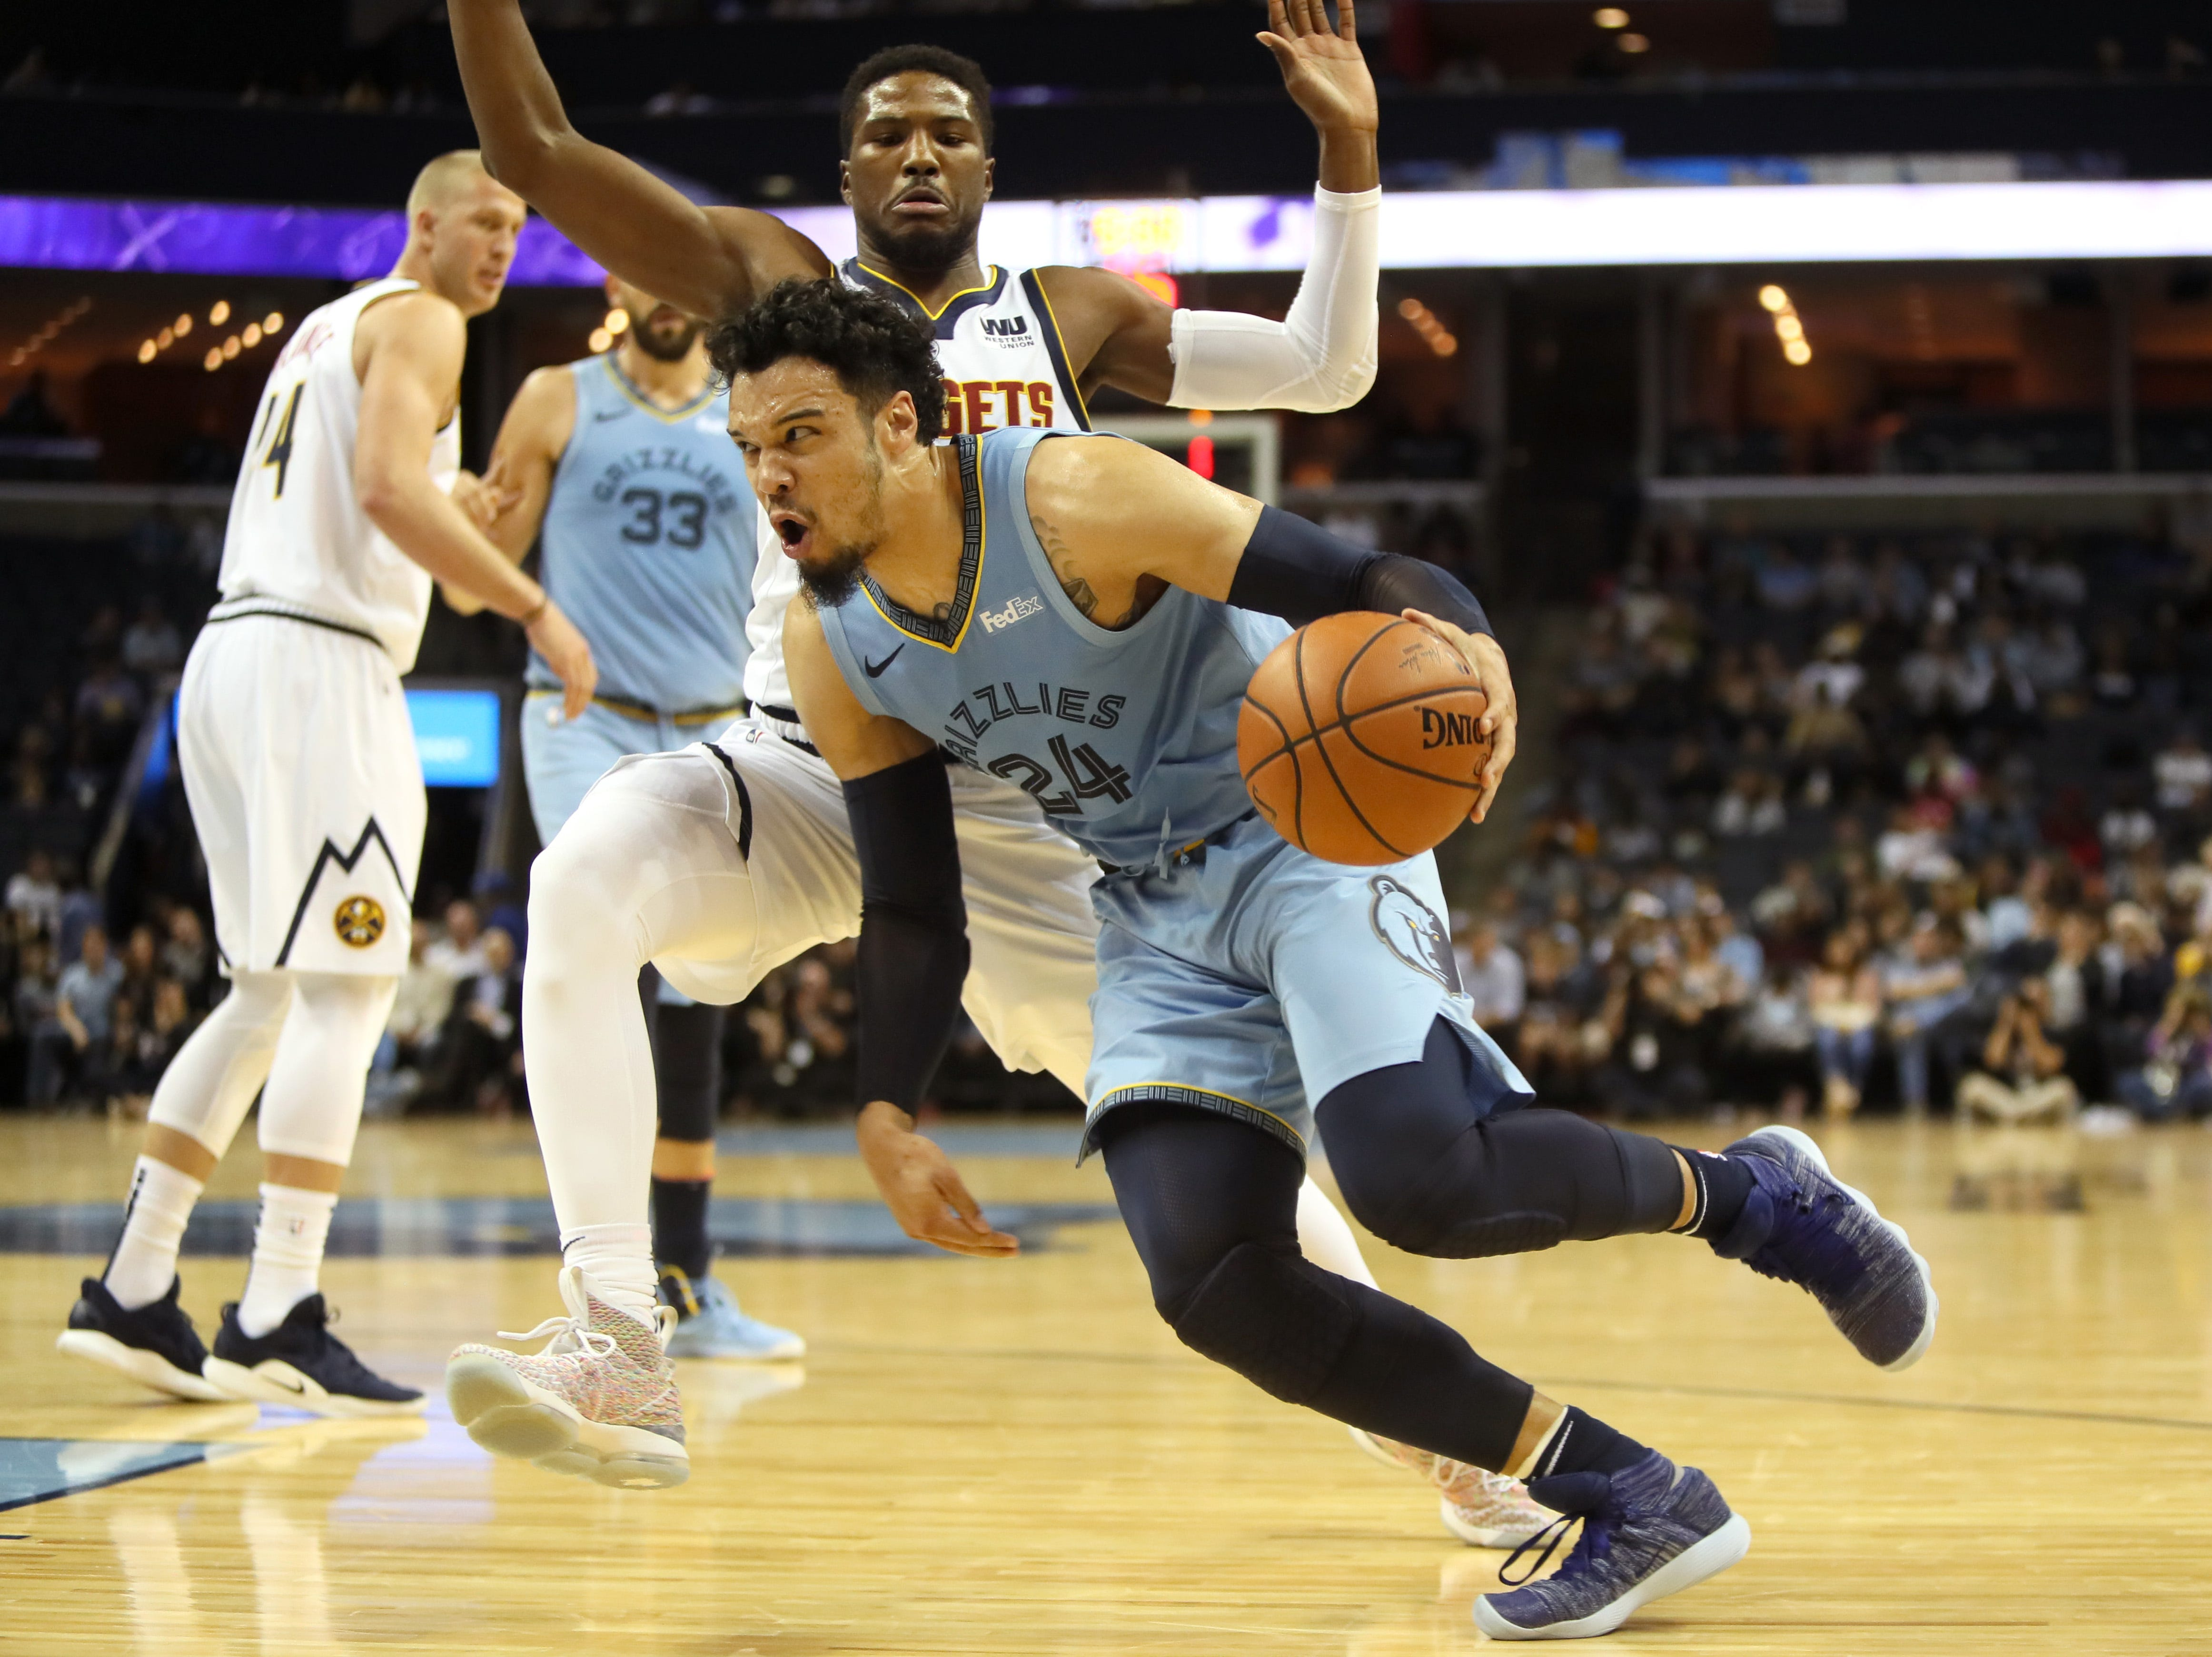 Memphis Grizzlies guard Dillon Brooks drives past Denver Nuggets guard Malik Beasley during their game at the FedExForum on Wednesday, November 7, 2018.